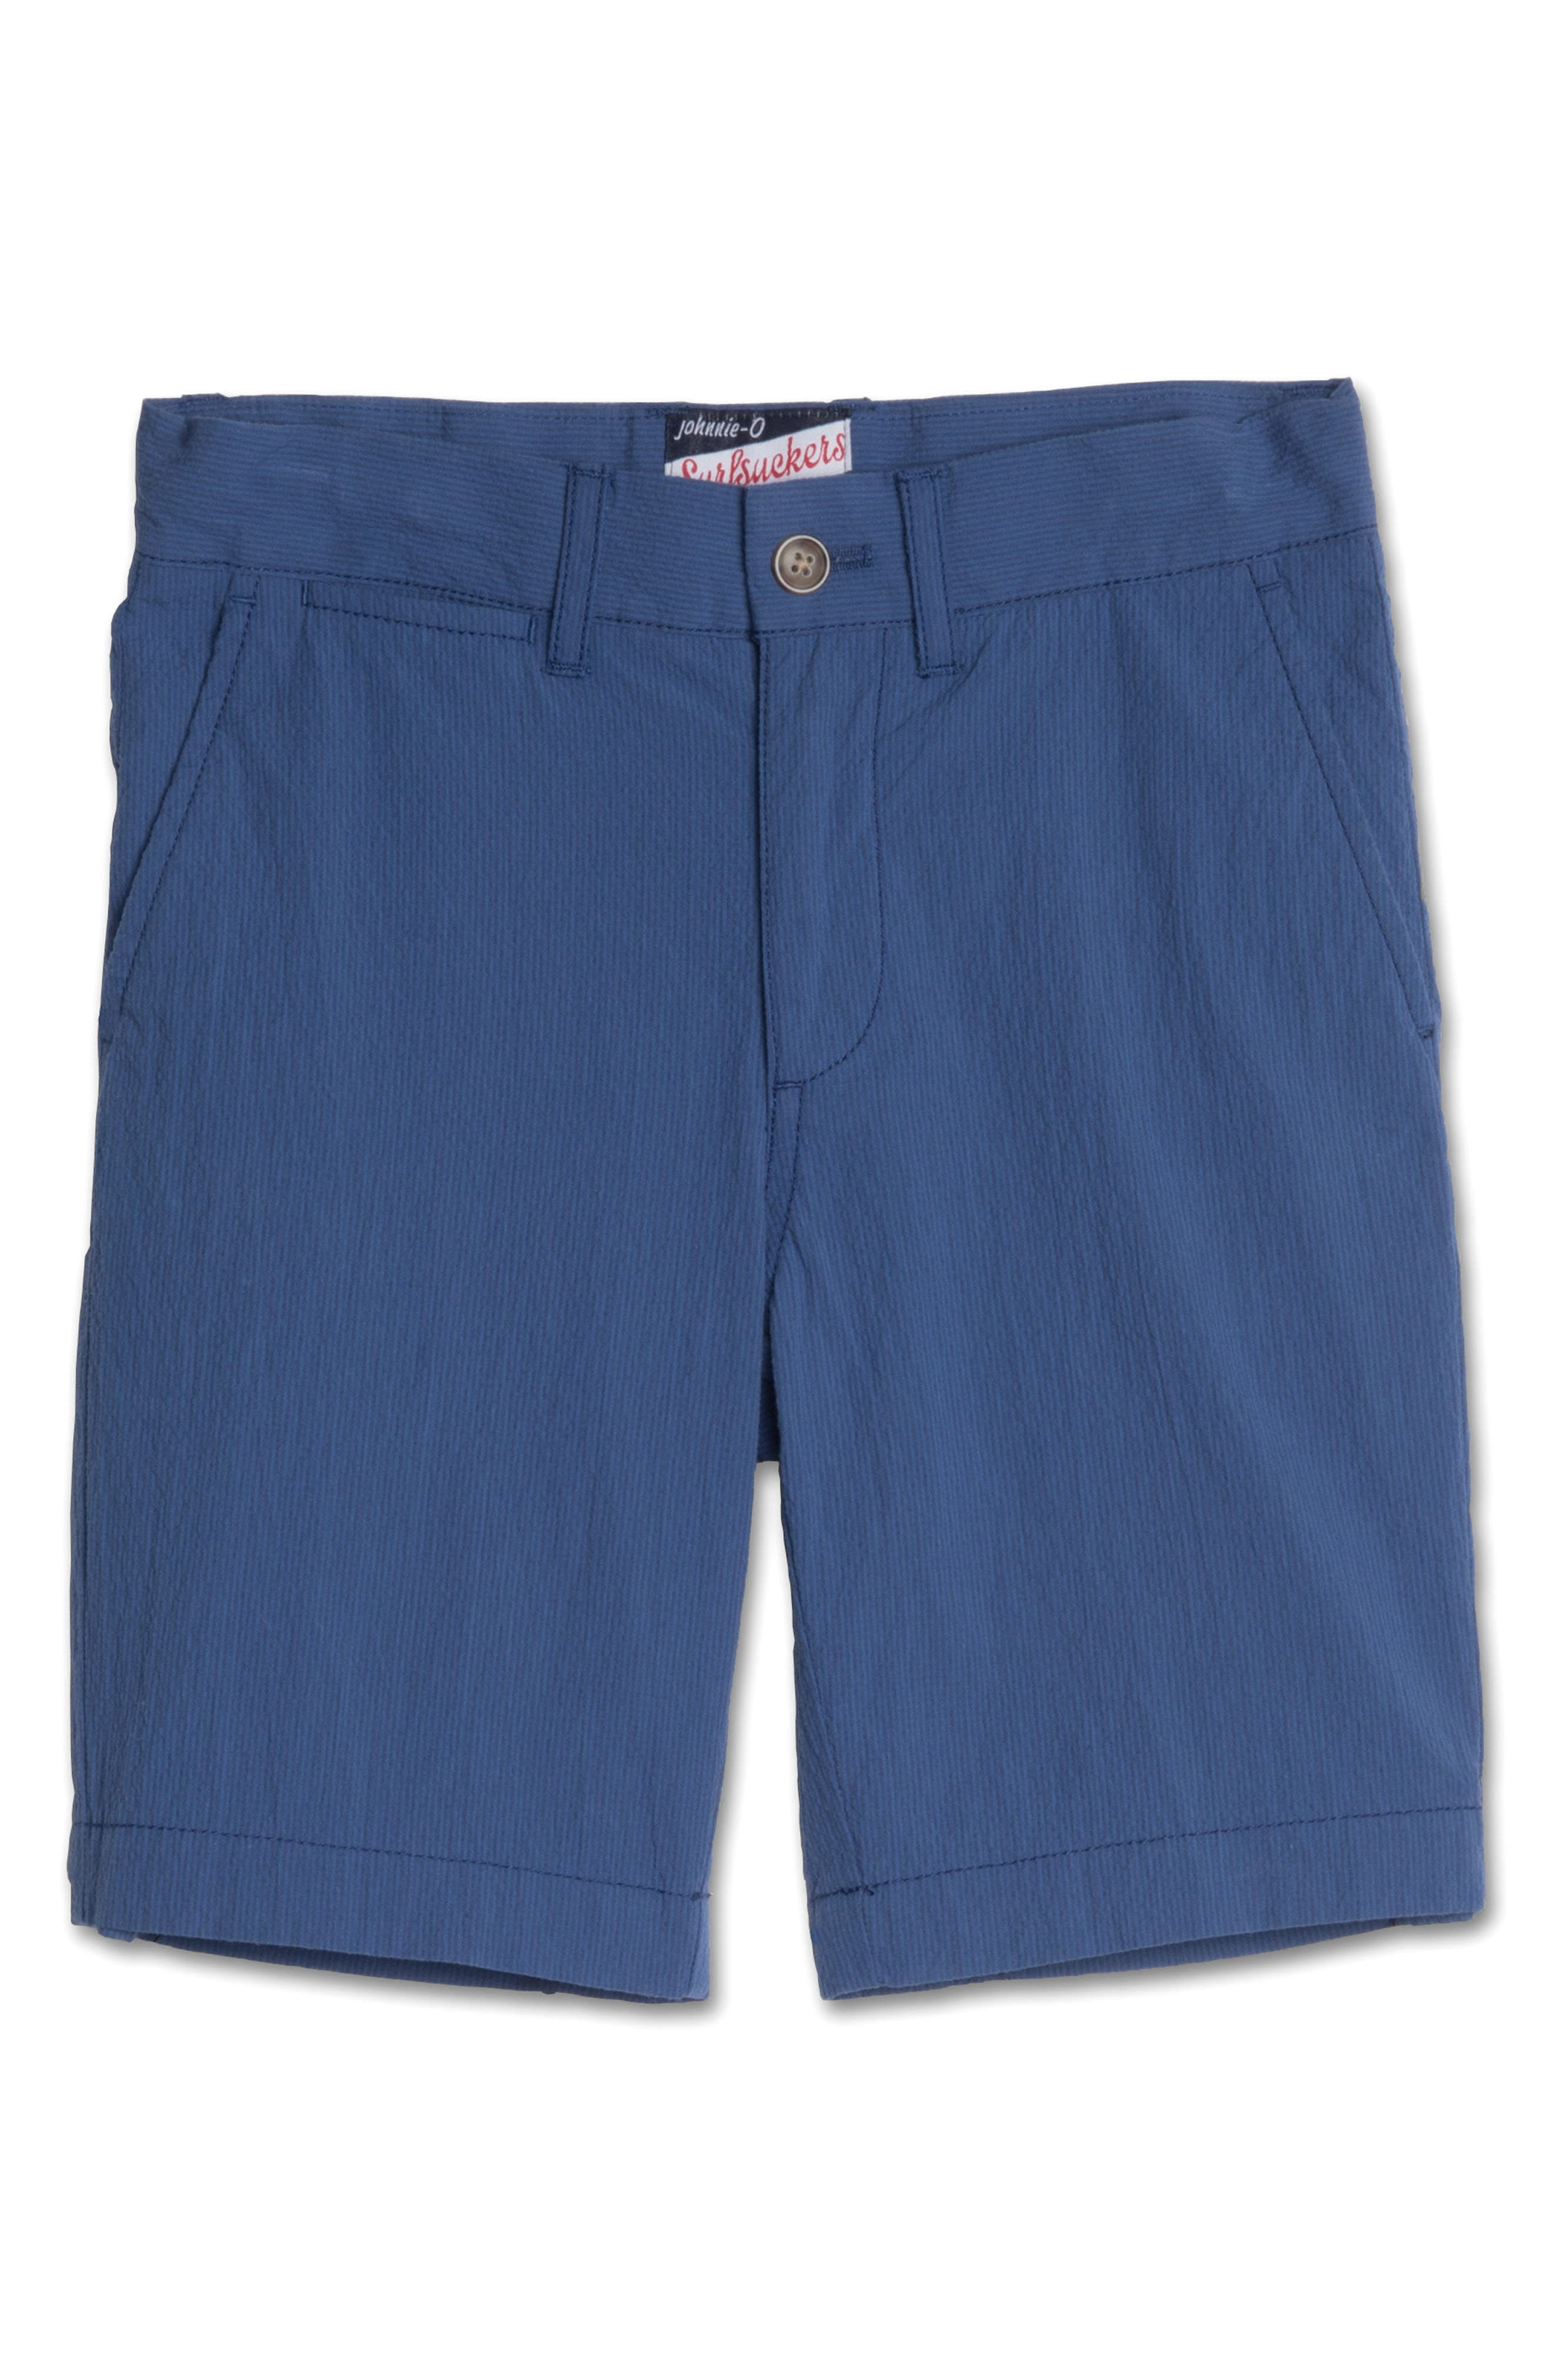 Bryson Seersucker Shorts,                         Main,                         color, 493